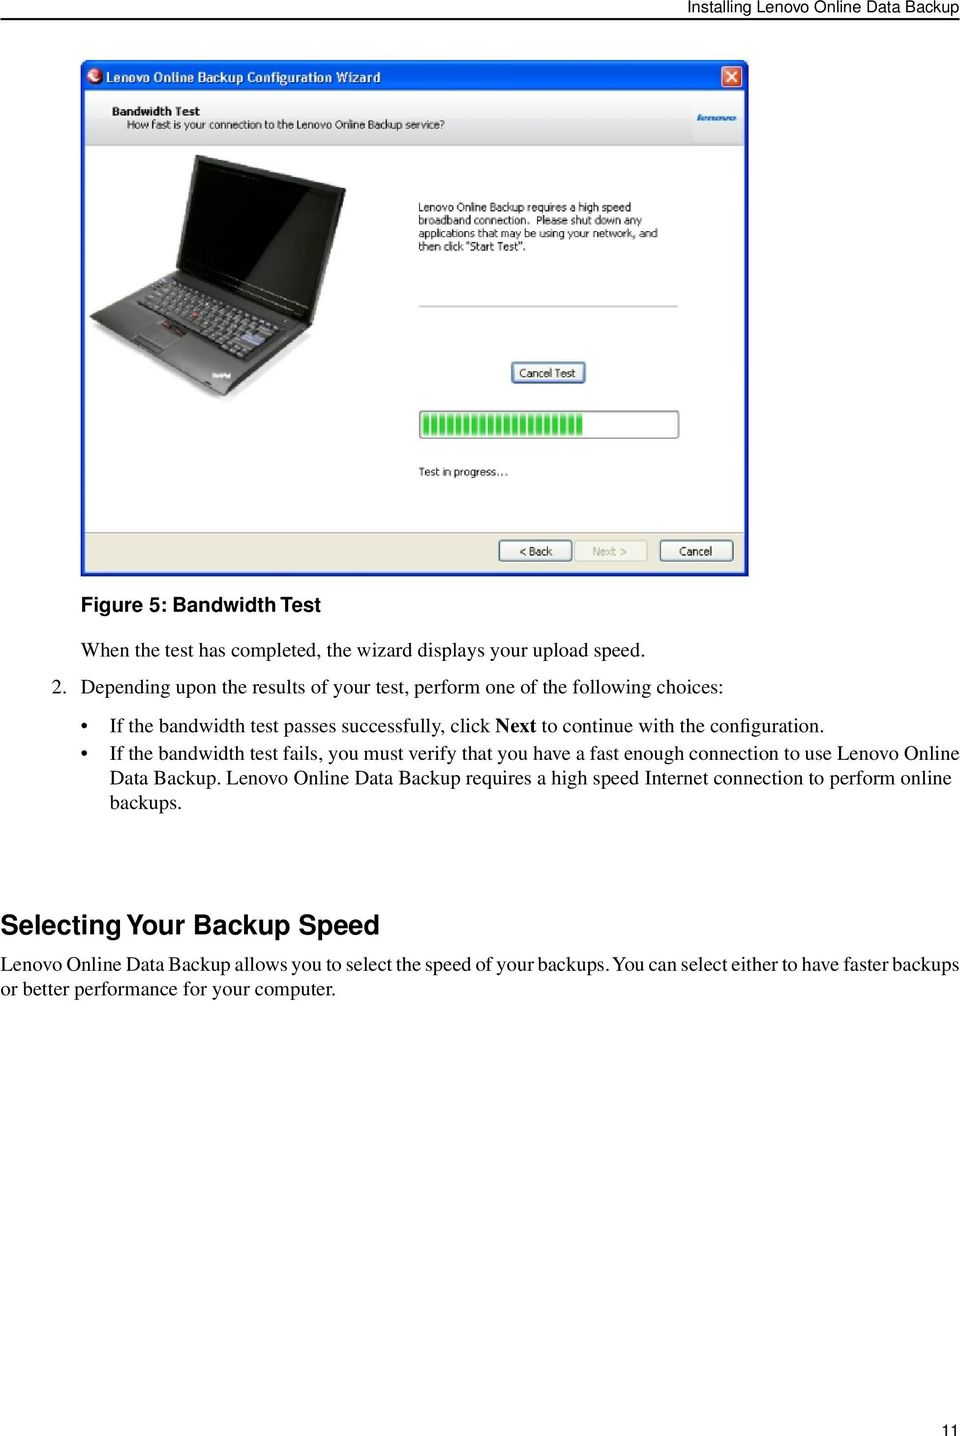 If the bandwidth test fails, you must verify that you have a fast enough connection to use Lenovo Online Data Backup.